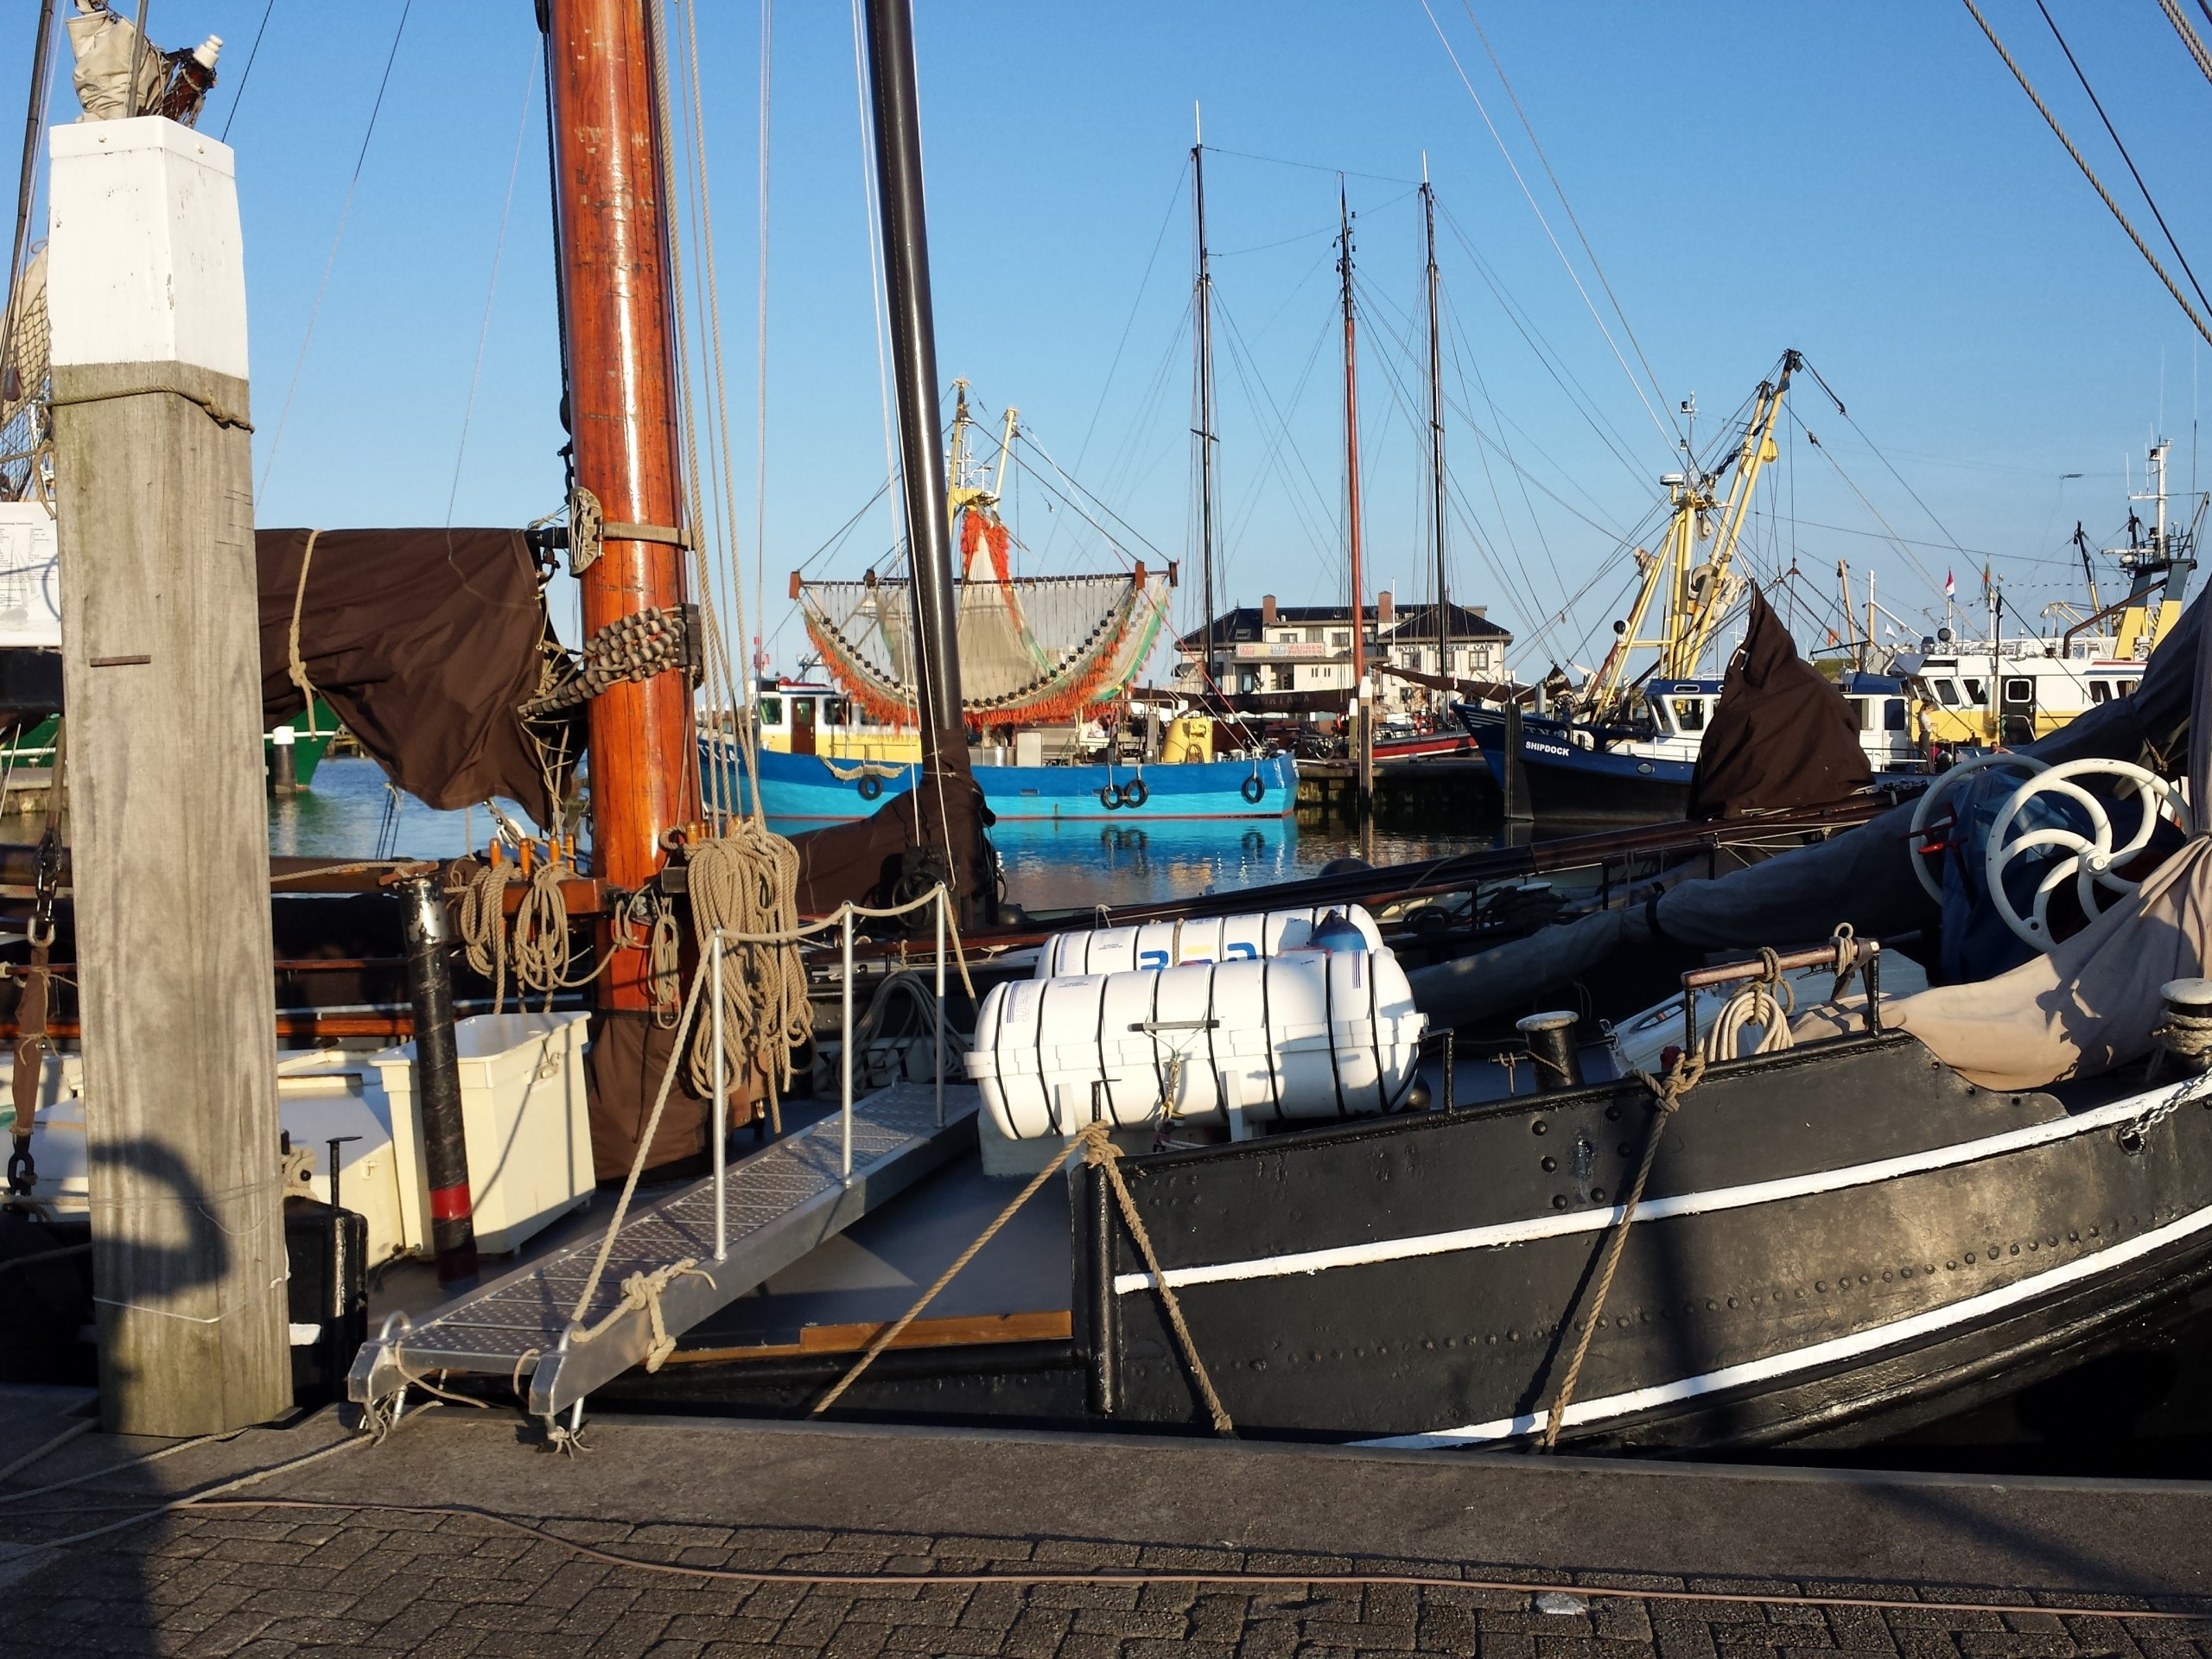 De haven van Oudeschild